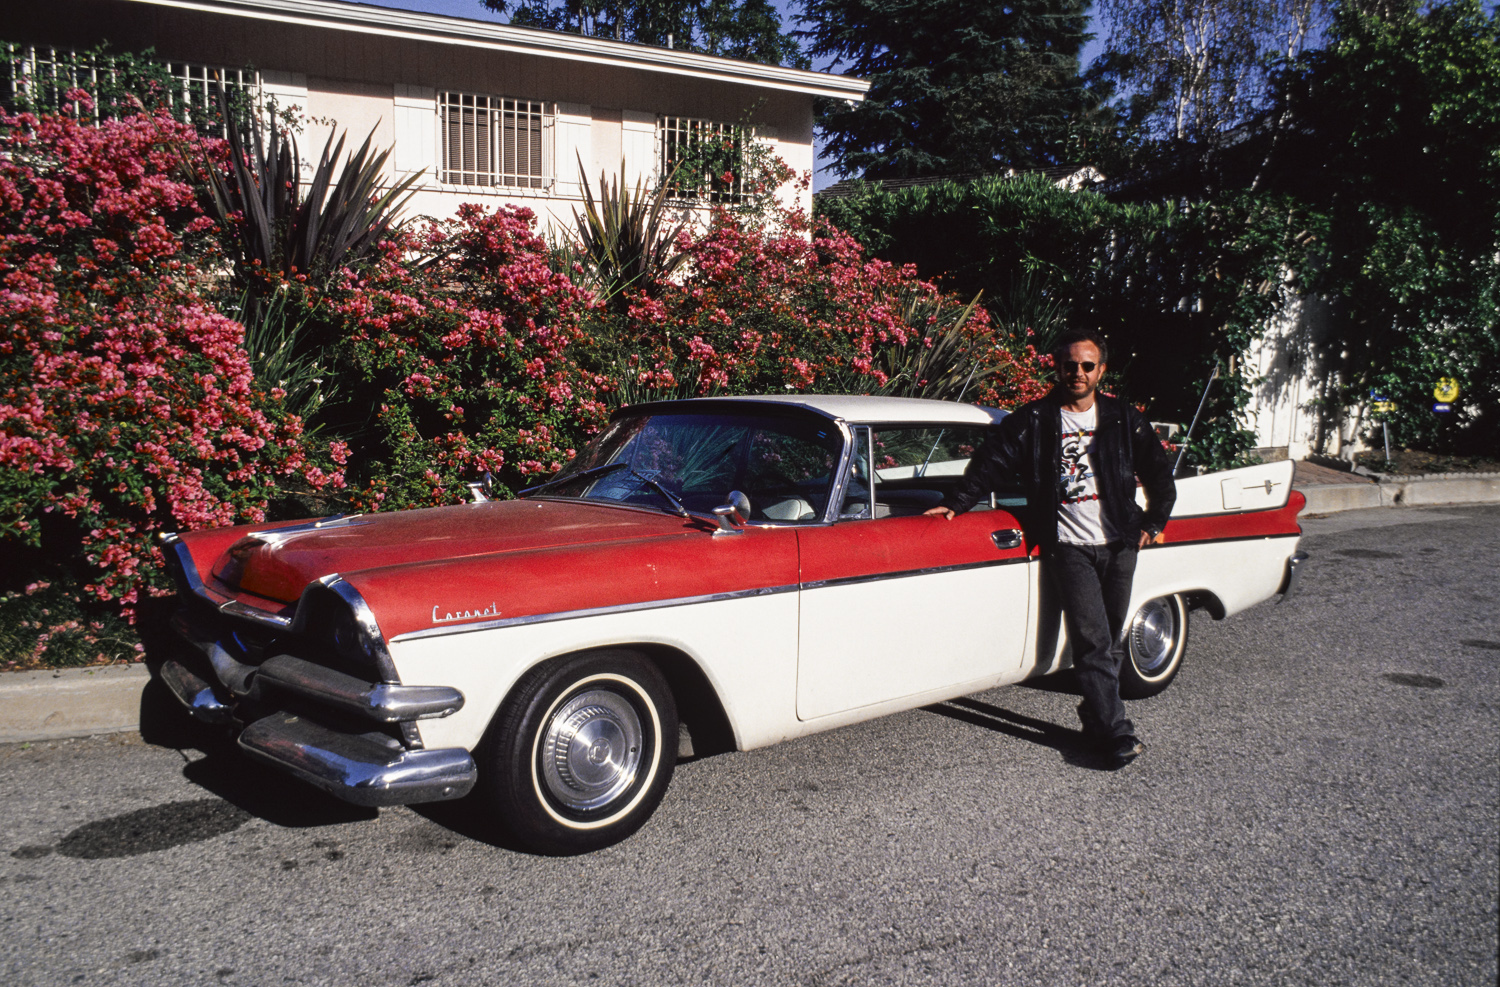 Fudd and his car - Santa Monica, 1992